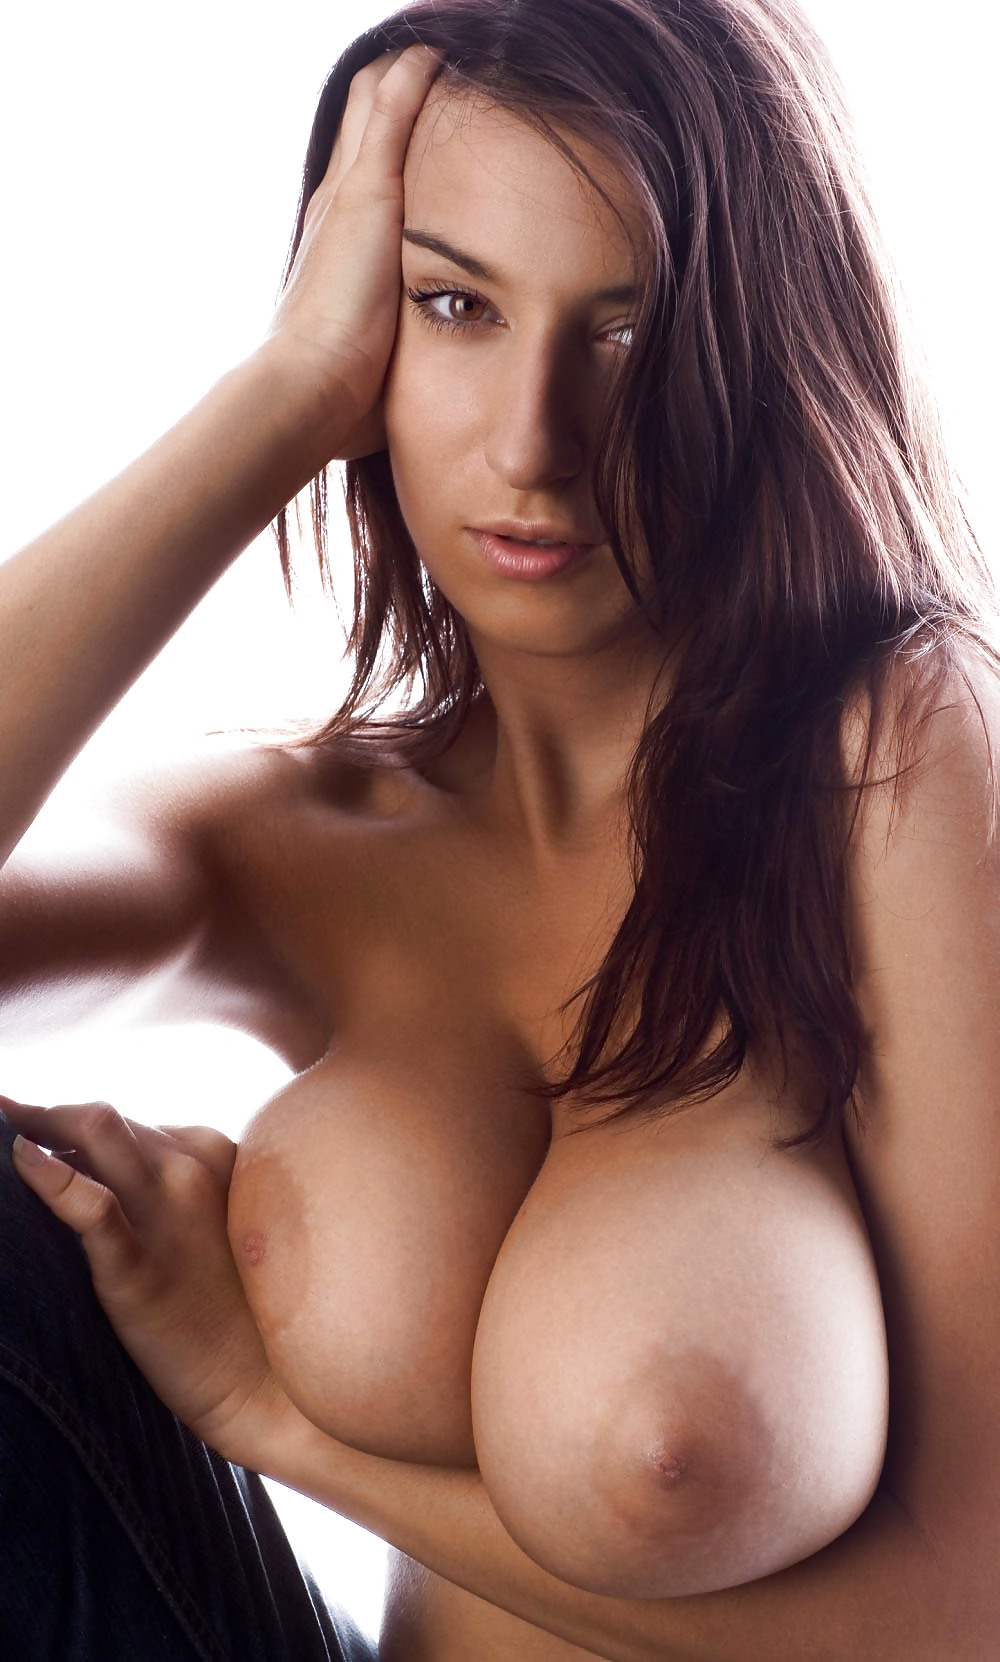 Very beautiful girl boobs see porn pic 11